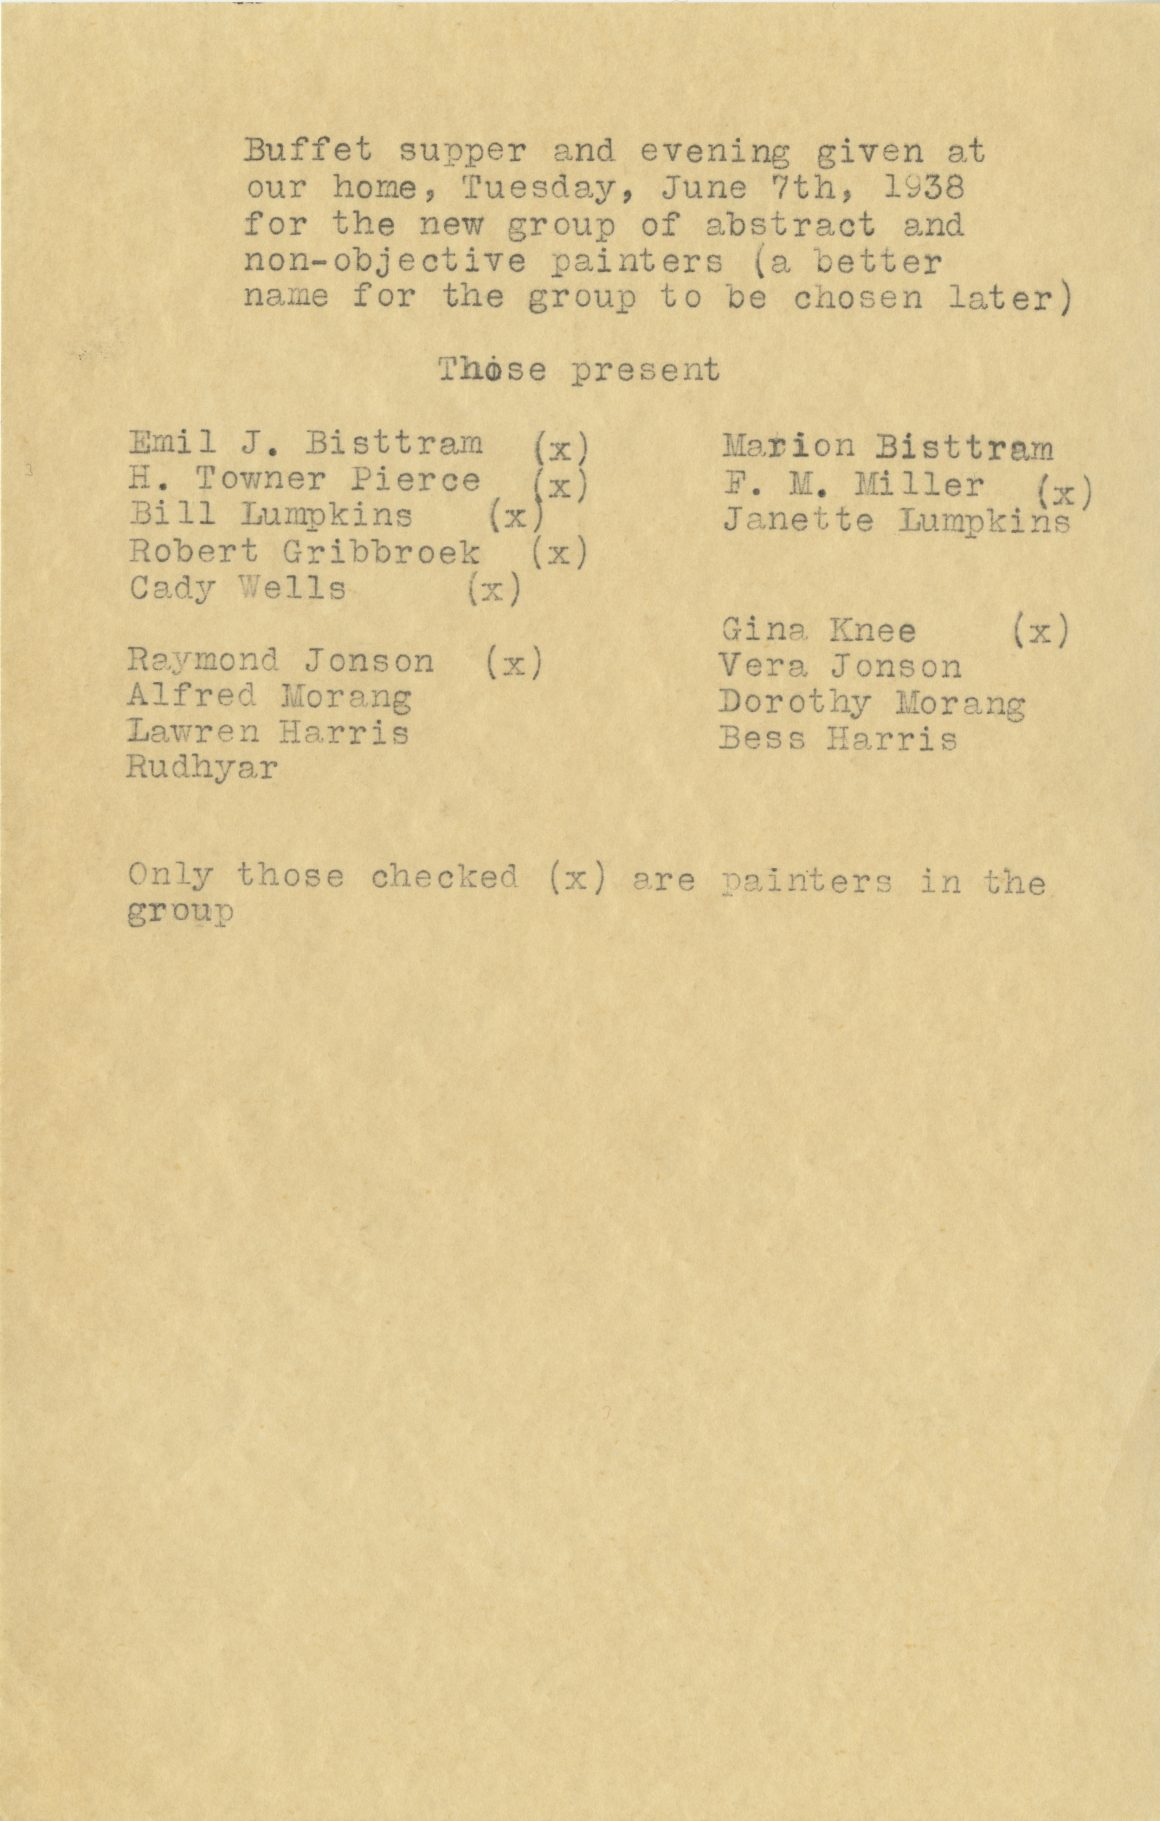 List of attendees of the first Transcendental Painting Group meeting, June 7, 1938.